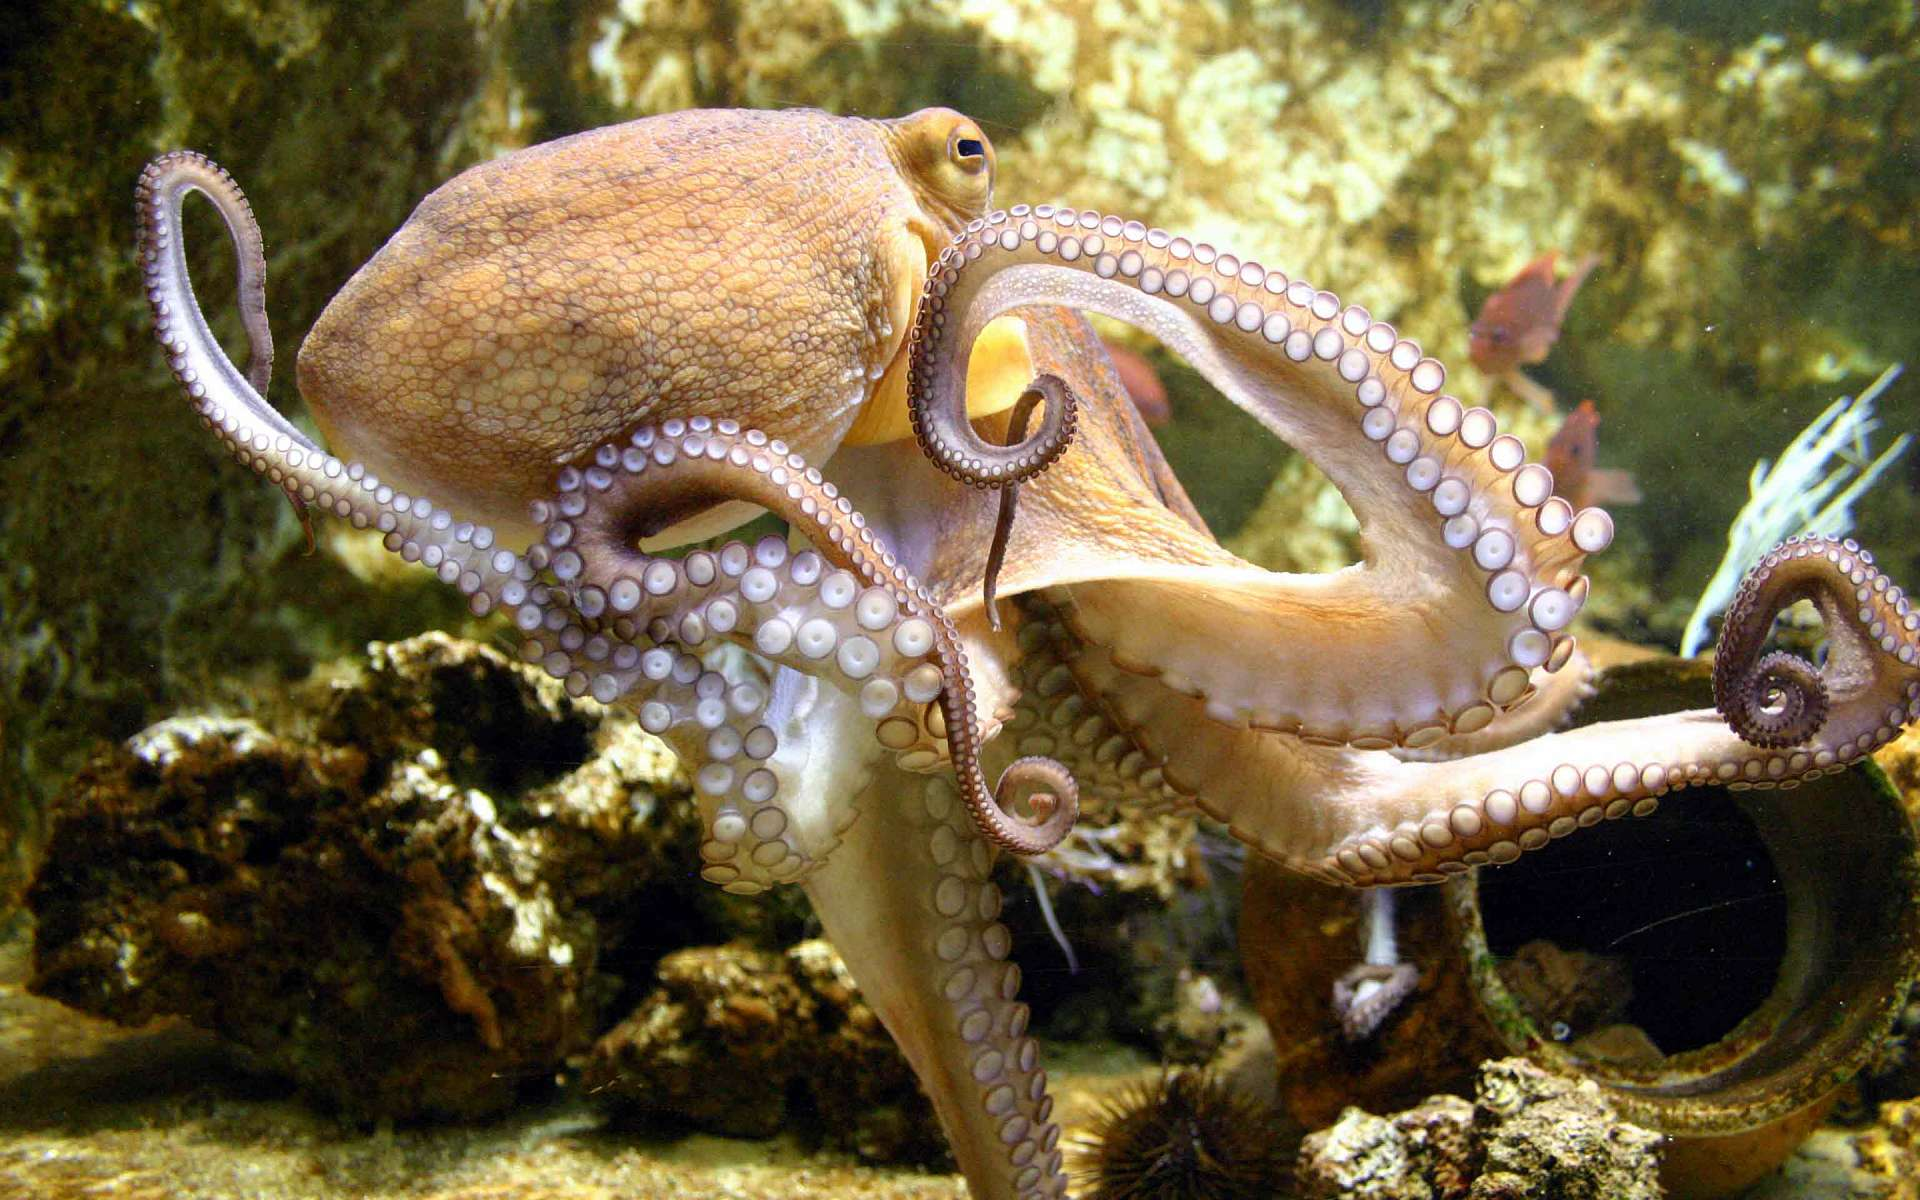 Octopus Image & Pictures